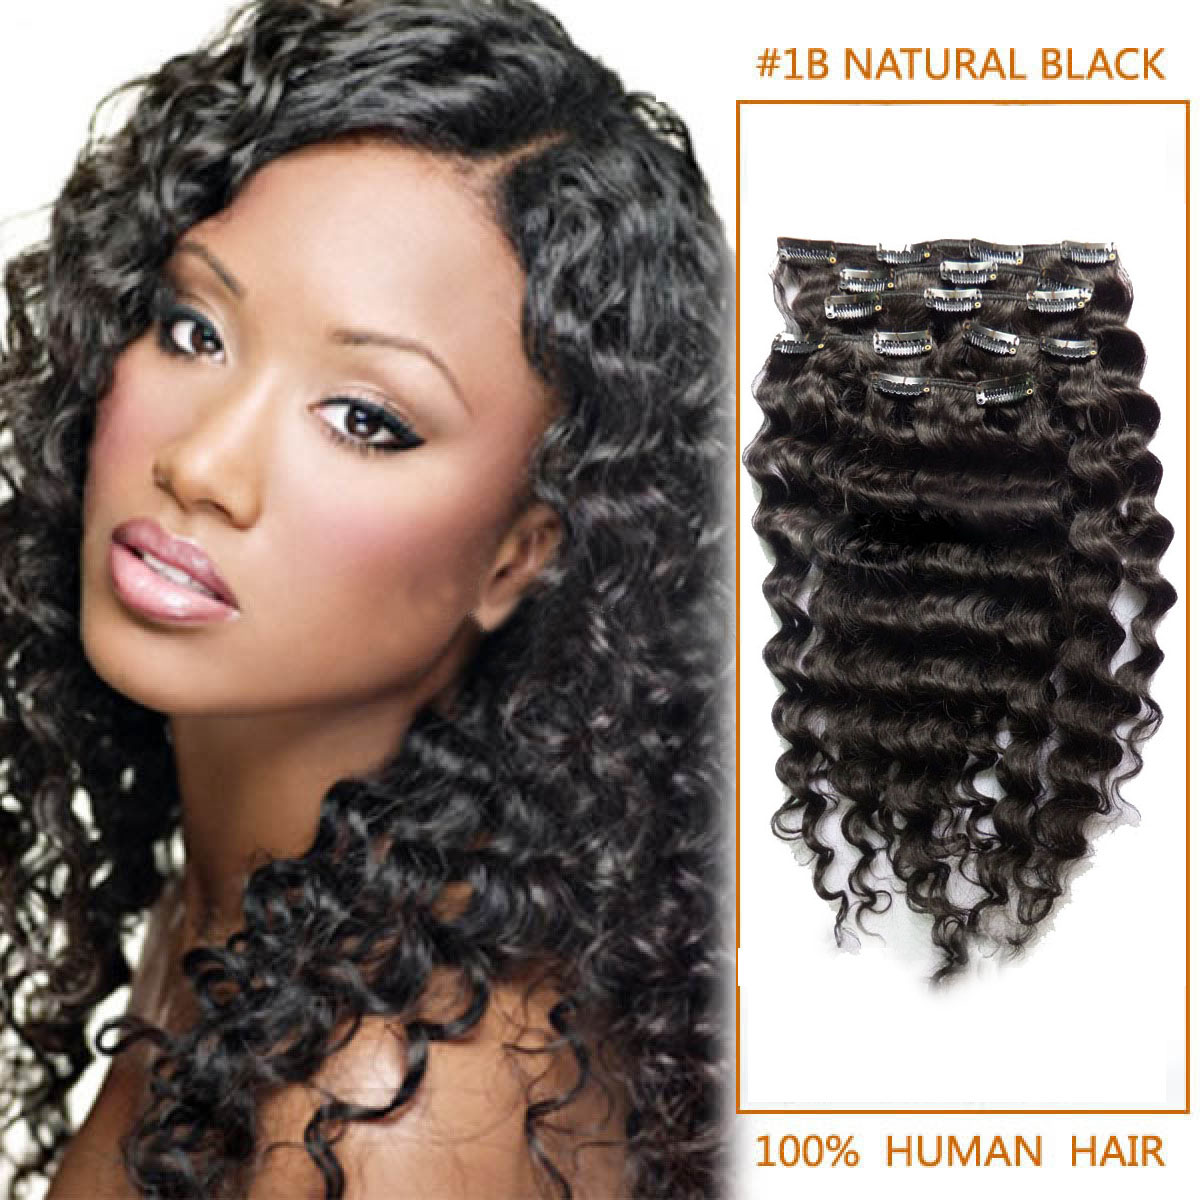 24 Inch Versatile 1b Natural Black Clip In Hair Extensions Curly 7